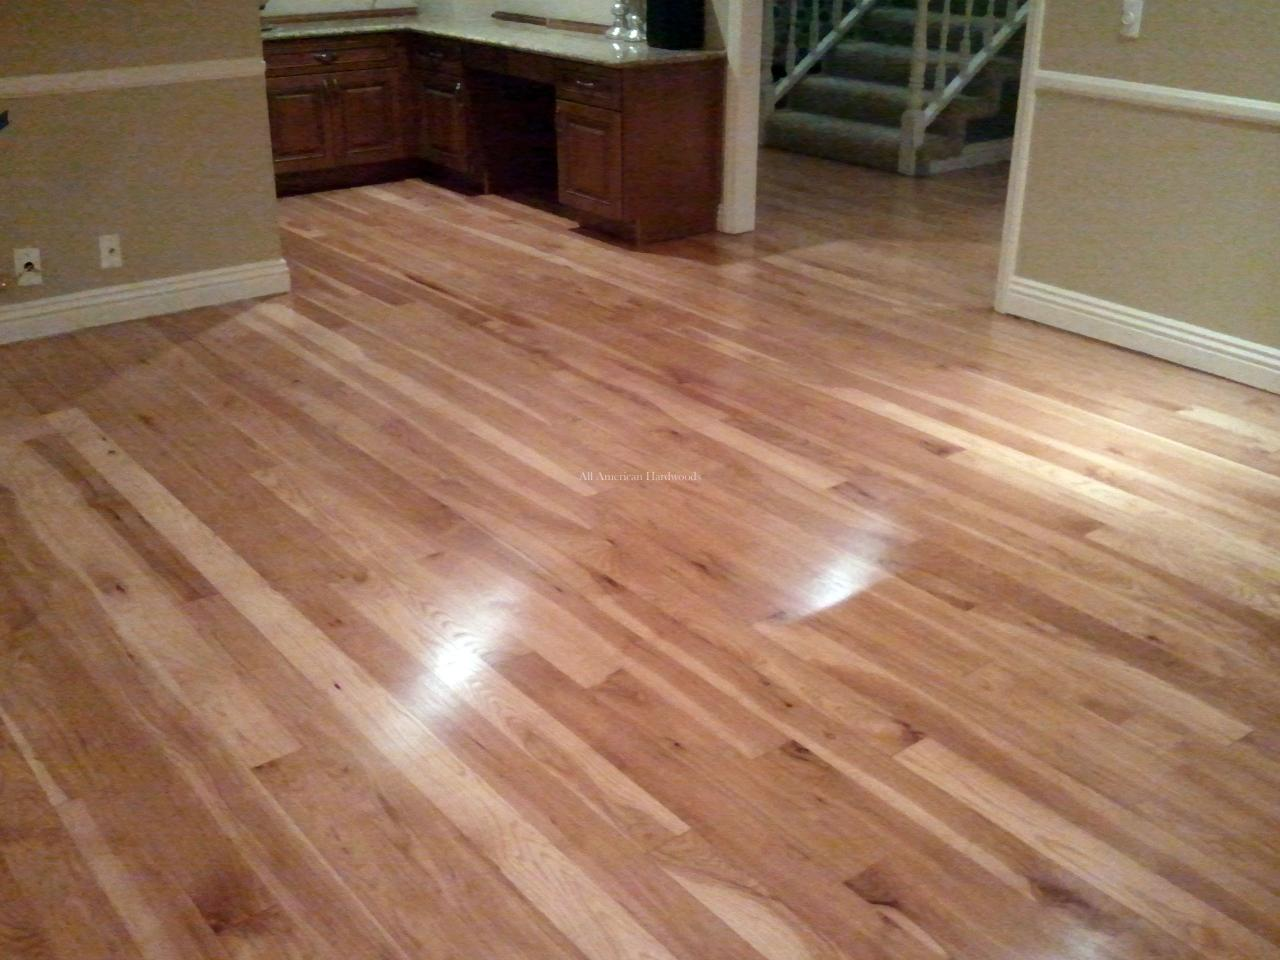 Hardwood floor finish water based vs oil based hardwood for Hardwood flooring zero voc